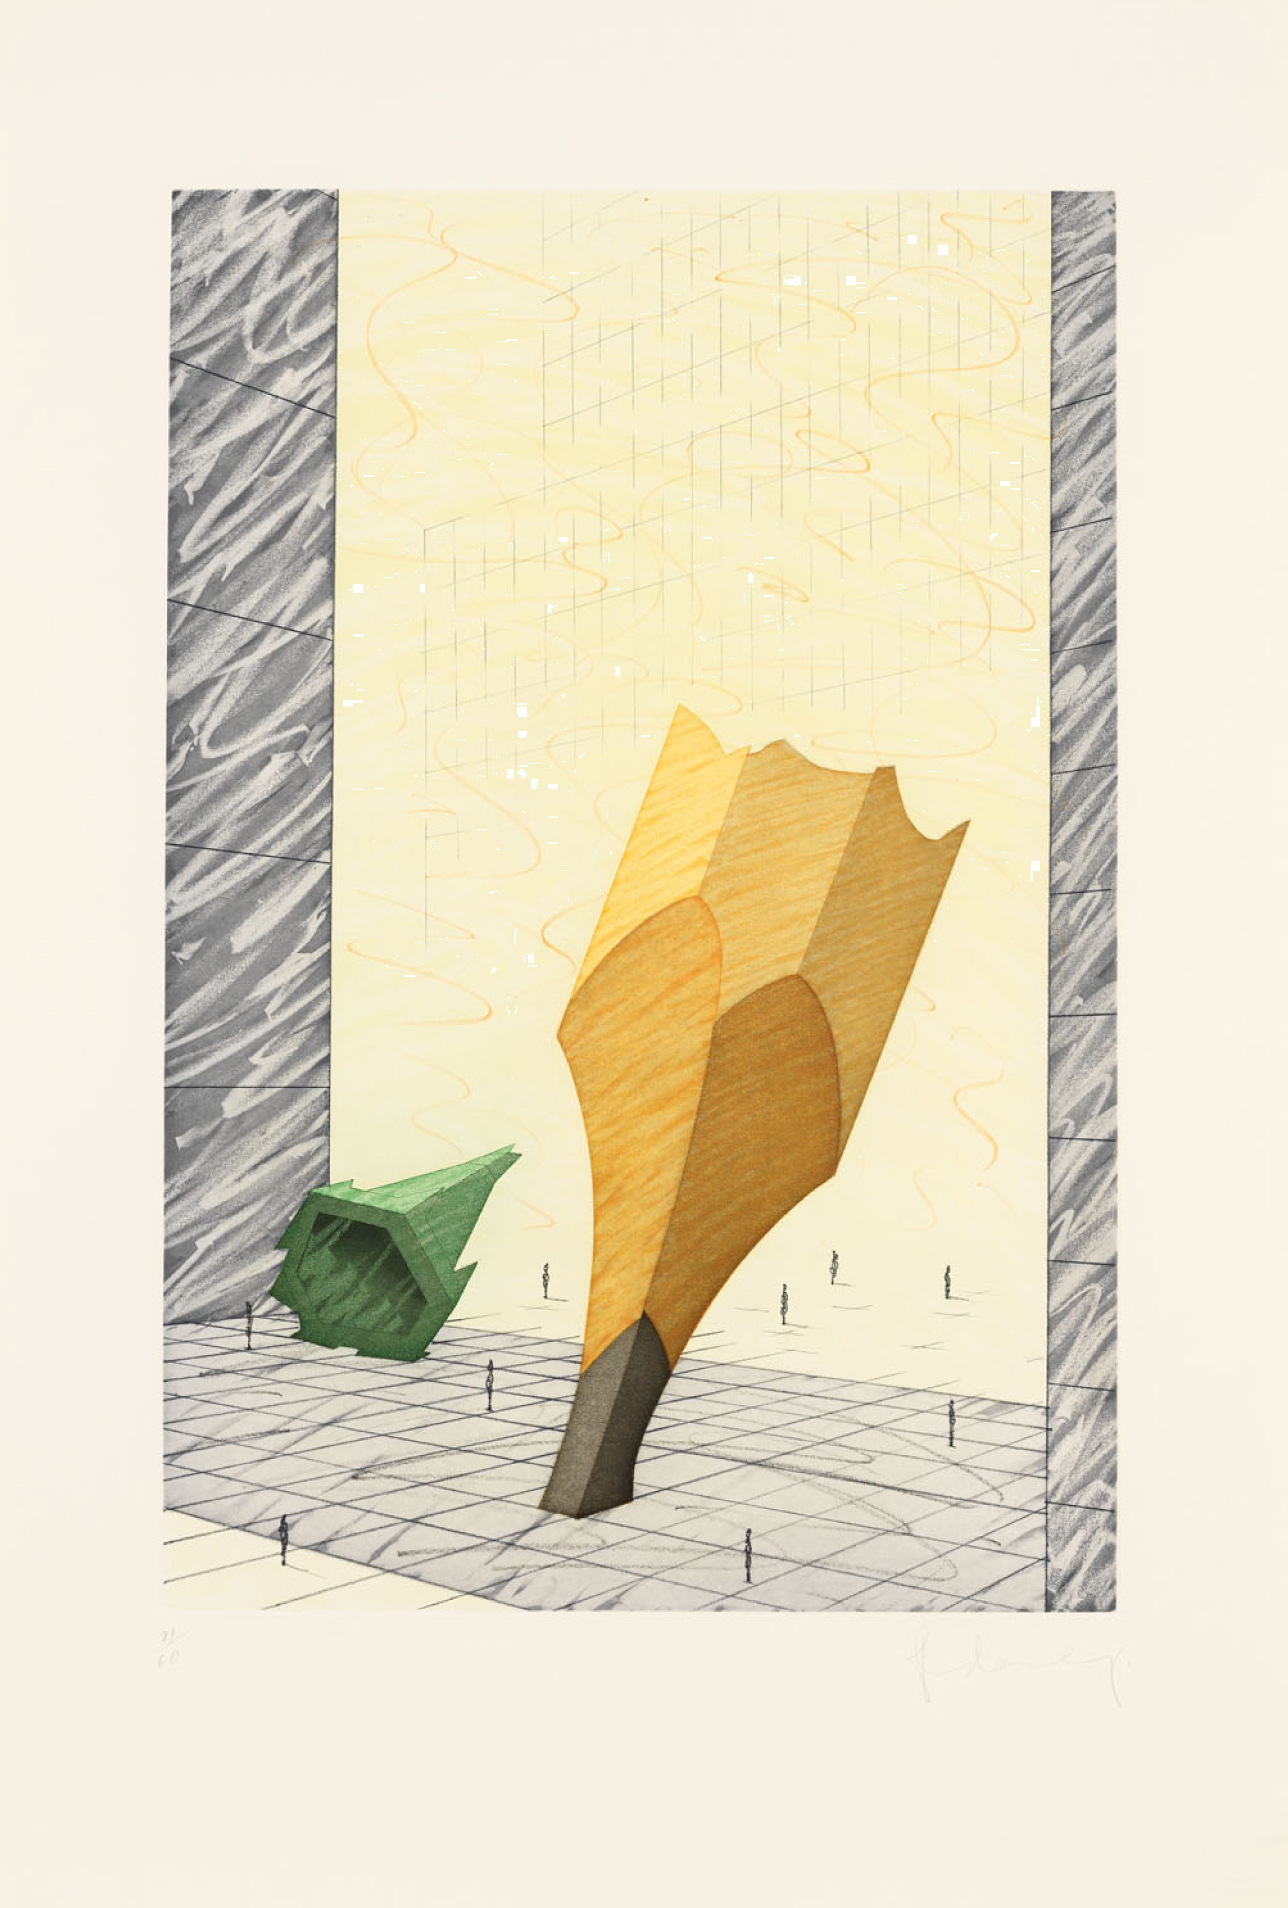 Claes Oldenburg, Proposal for a Colossal Monument in Downtown New York City: Sharpened Pencil, 1993, Etching with aquatint in eight colors, 32 3/4h x 22w in